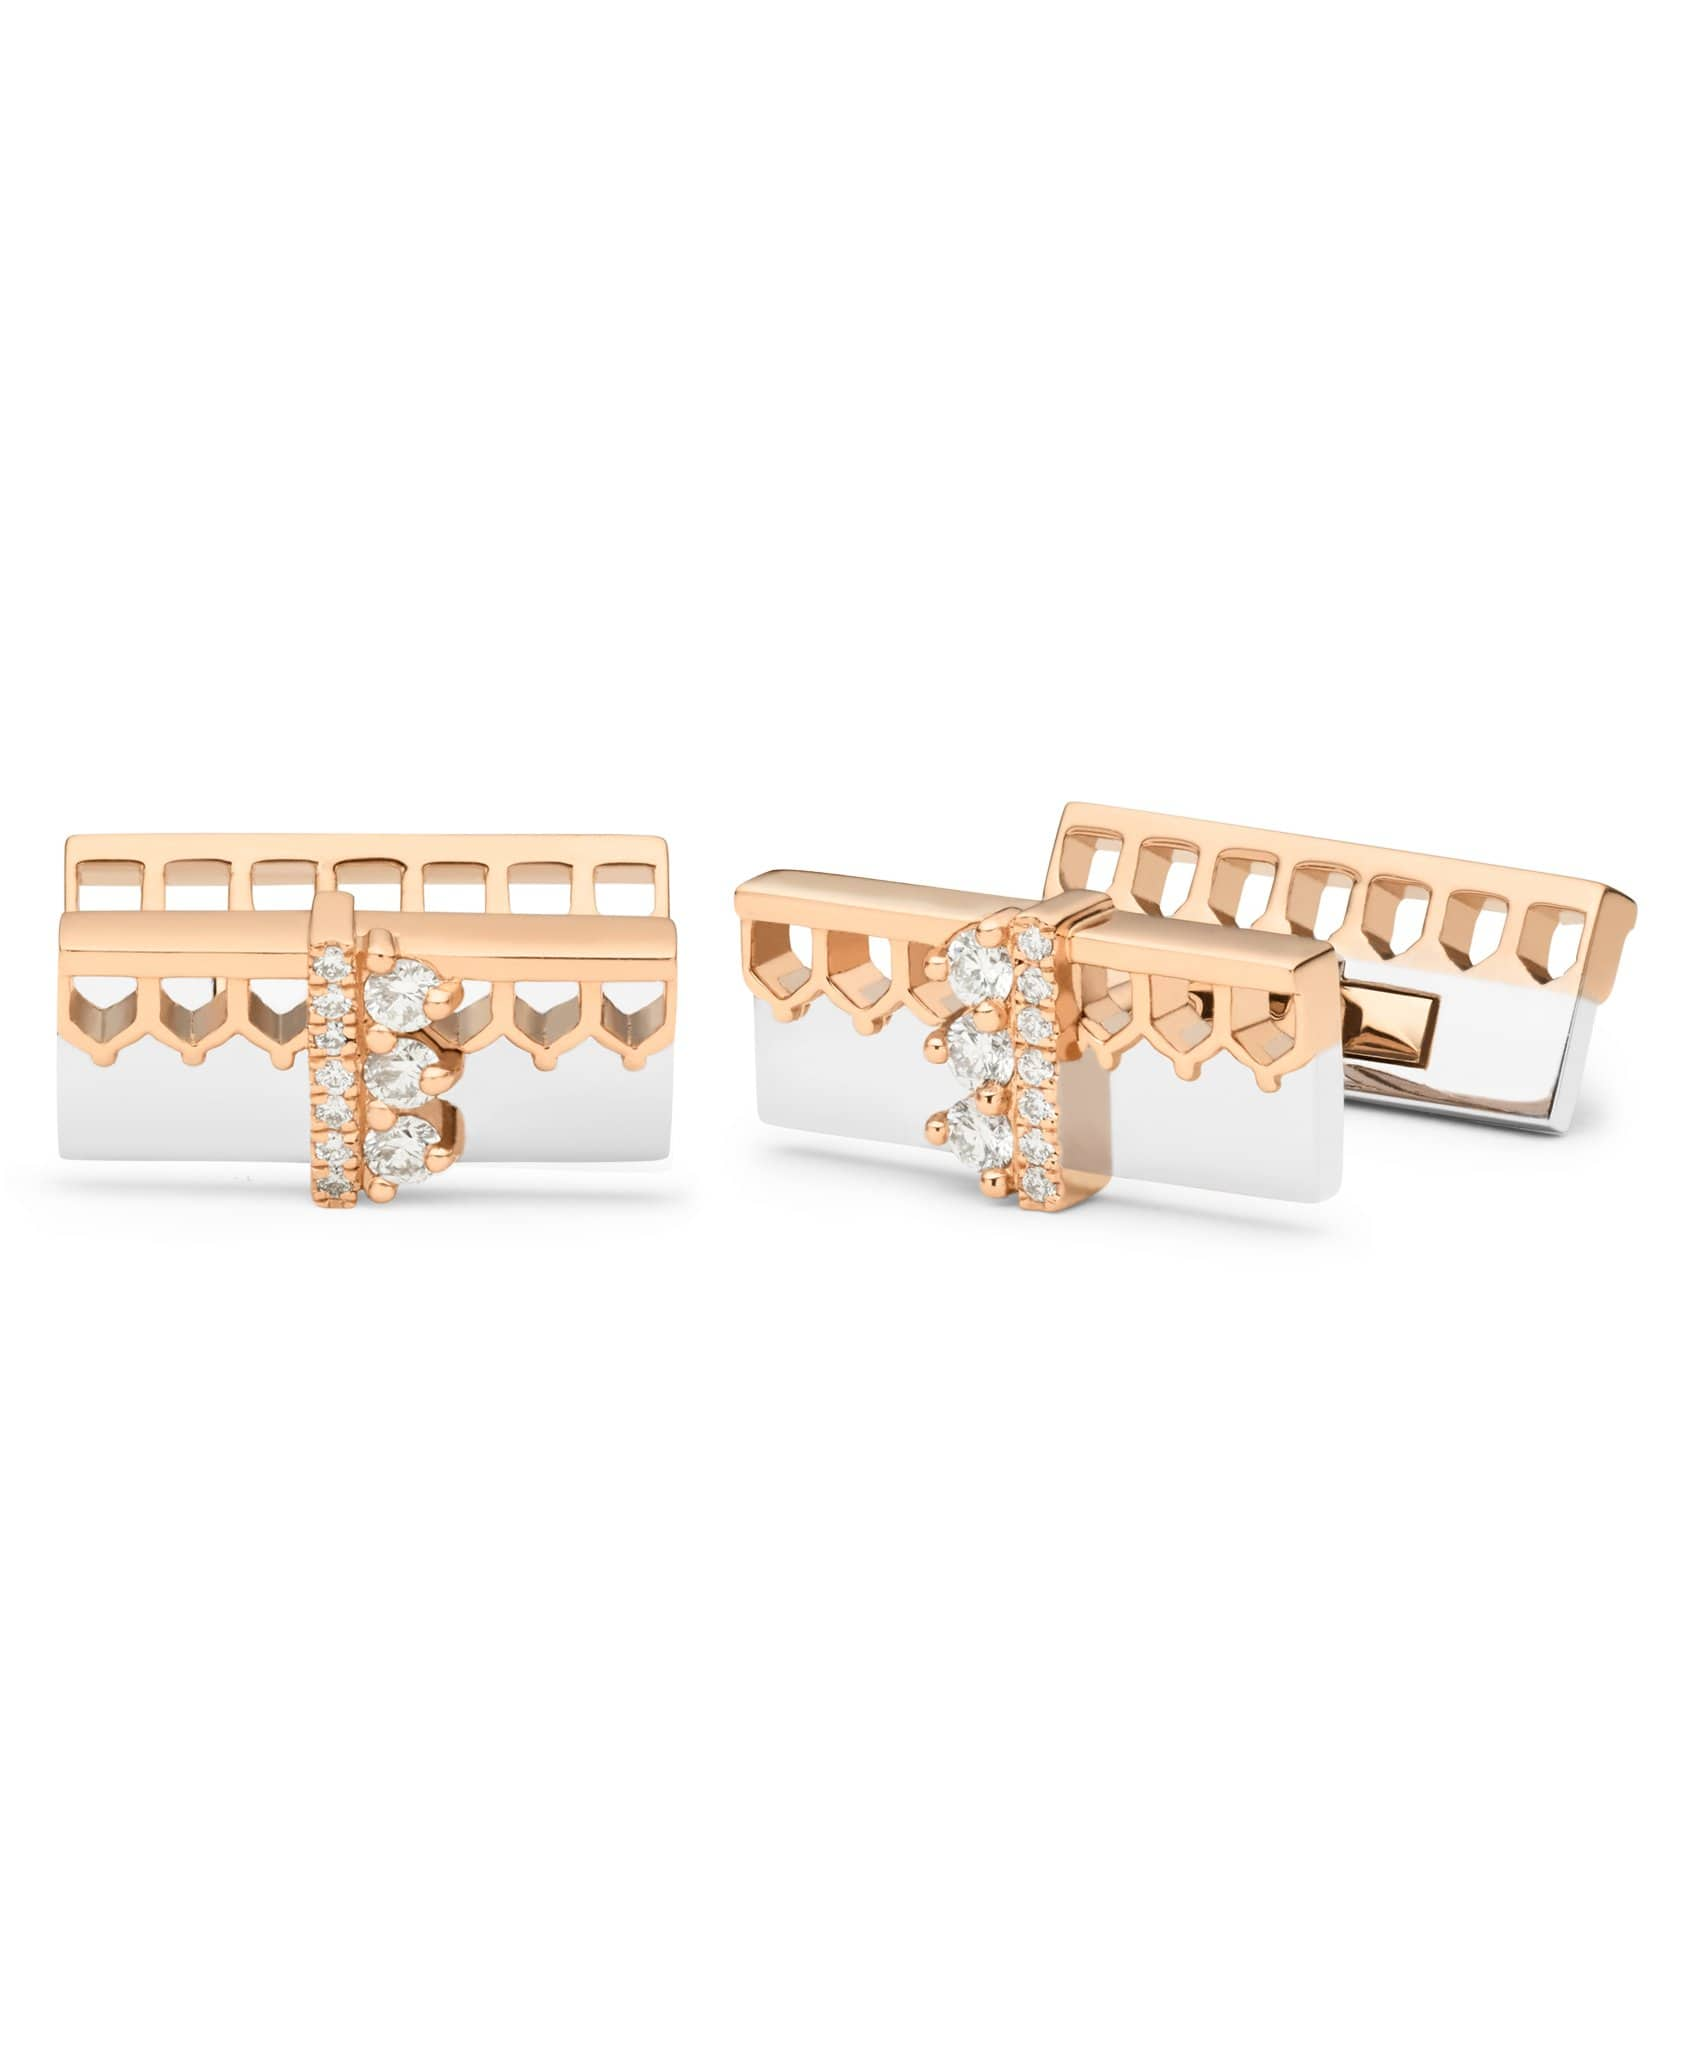 Hugo Cufflinks: Discover Luxury Fine Jewelry | Nouvel Heritage